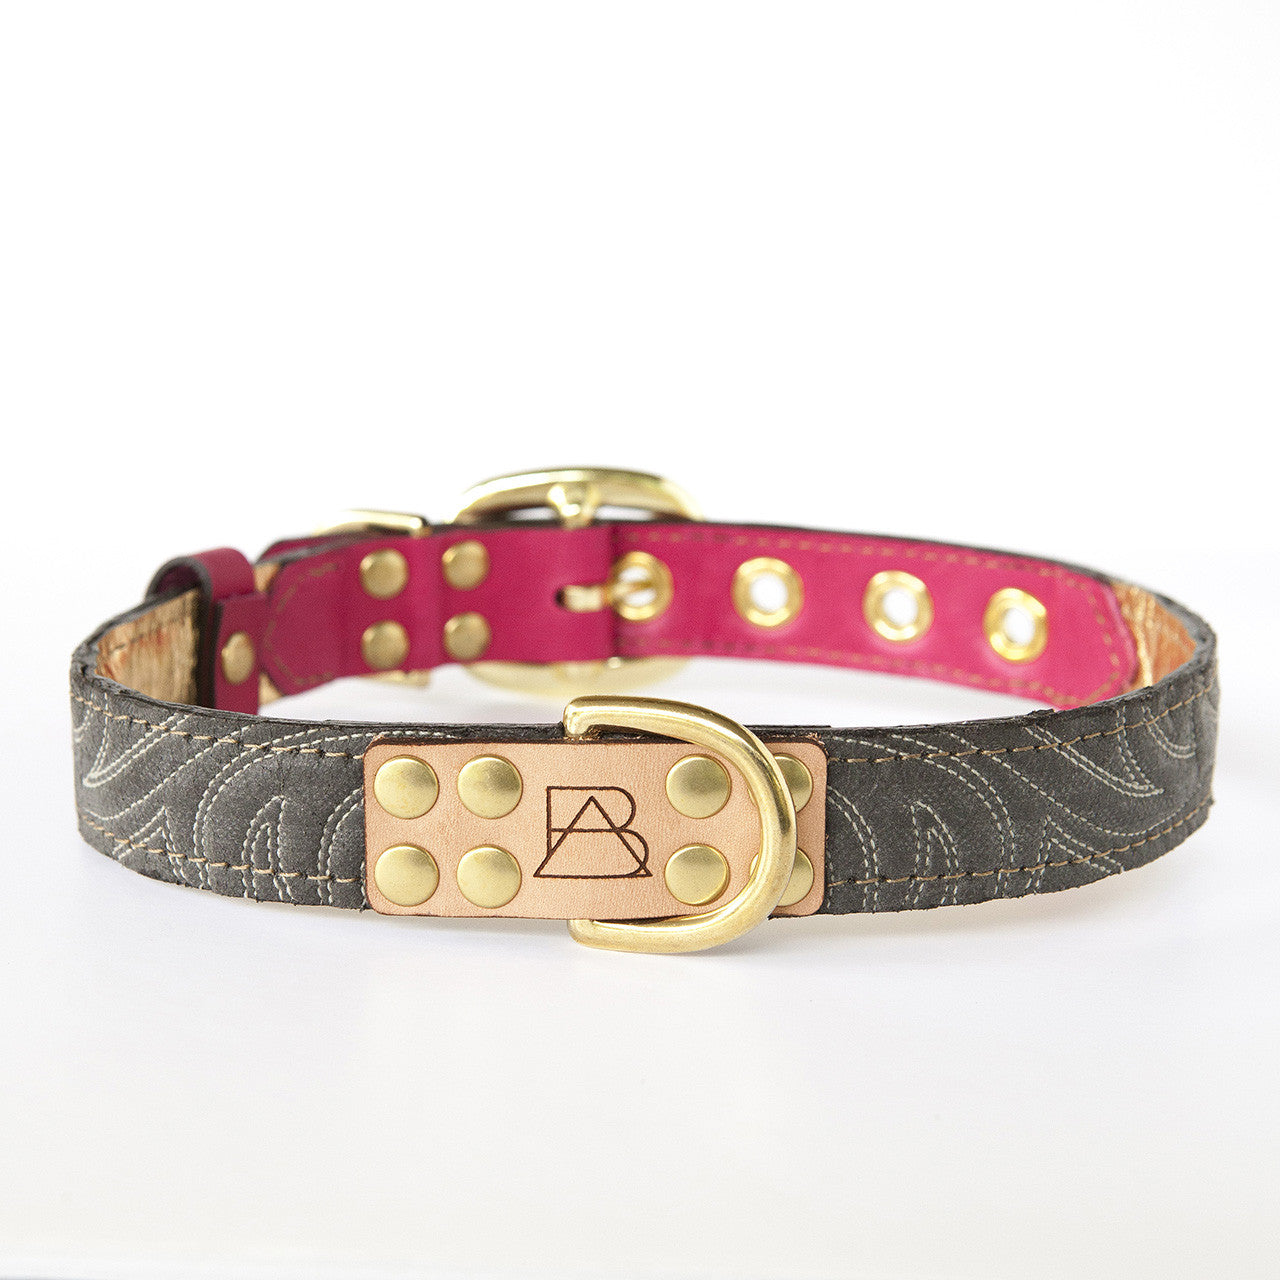 Hot Pink Dog Collar with Distressed Gray Leather + White Stitching (front view)